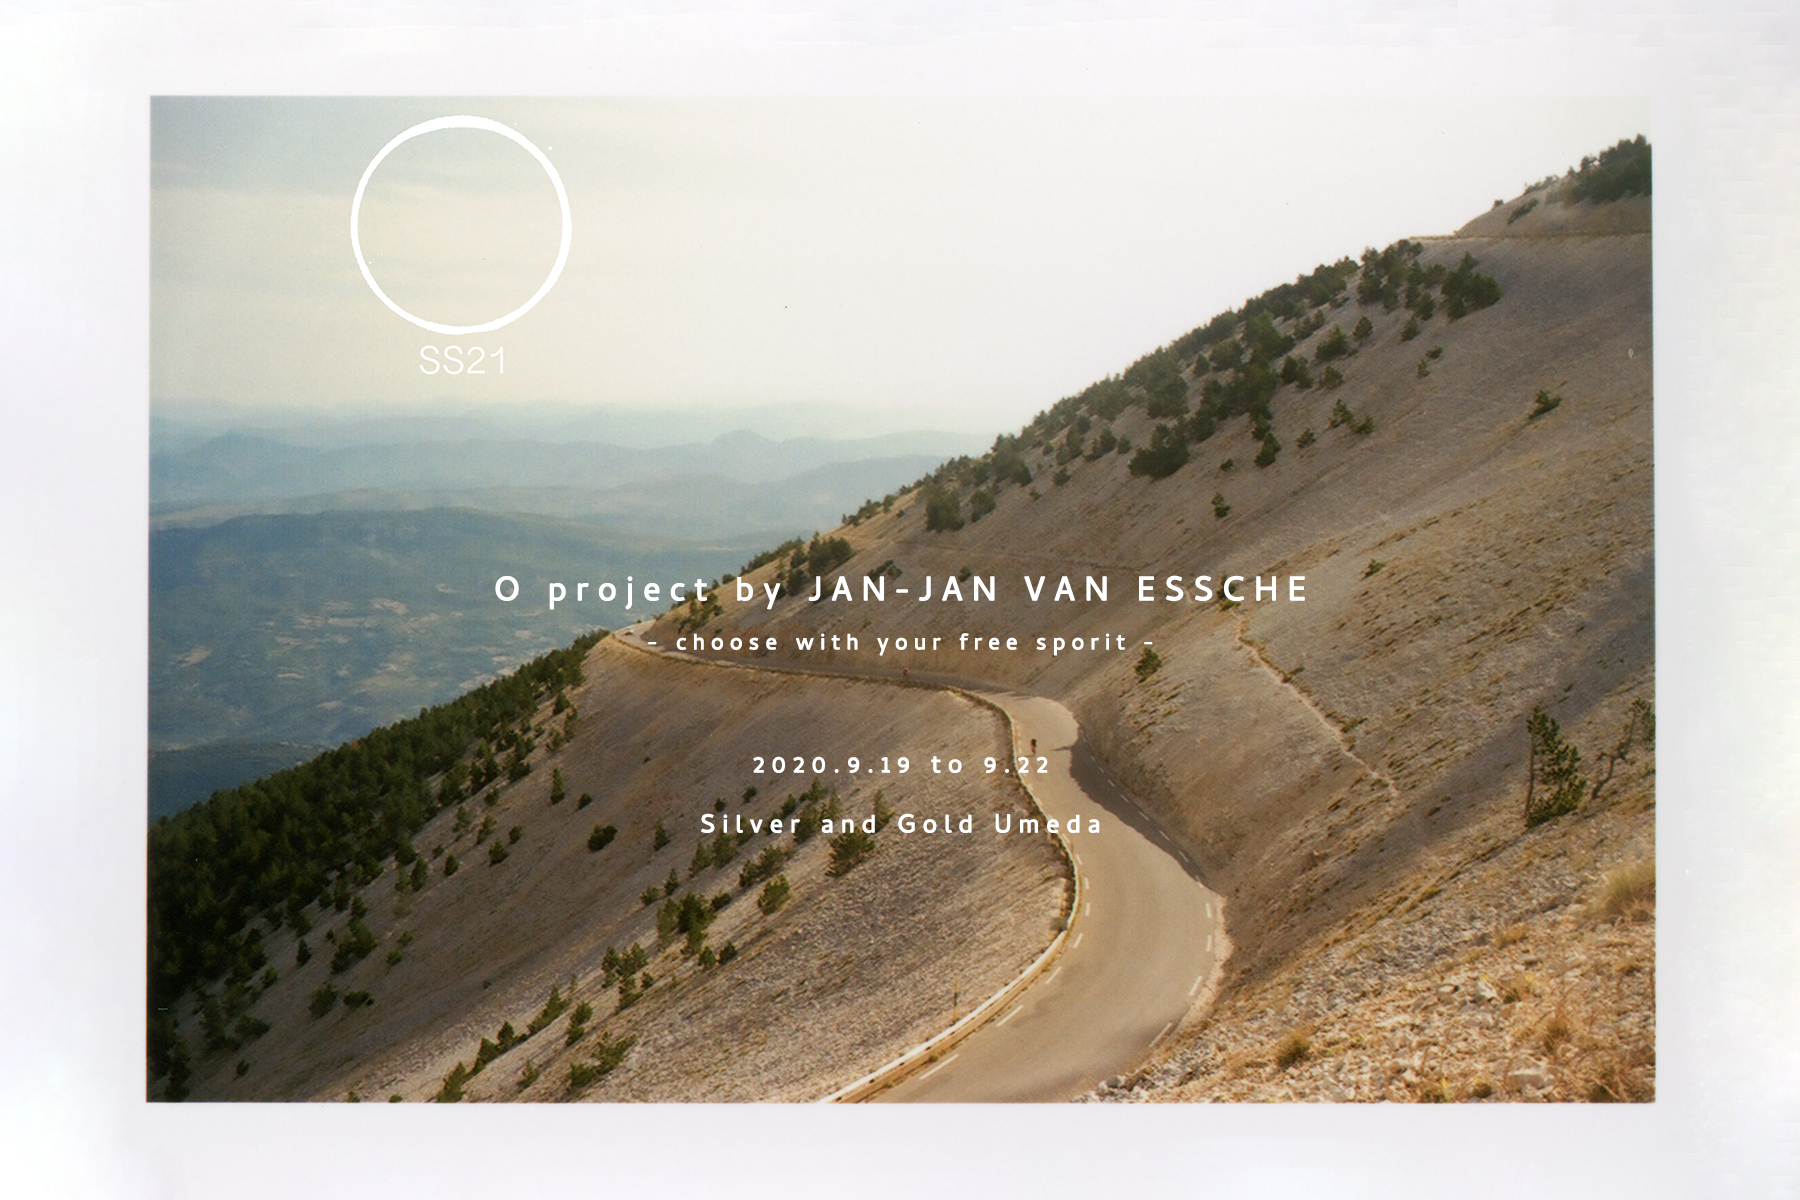 O project|choose with your free spirit